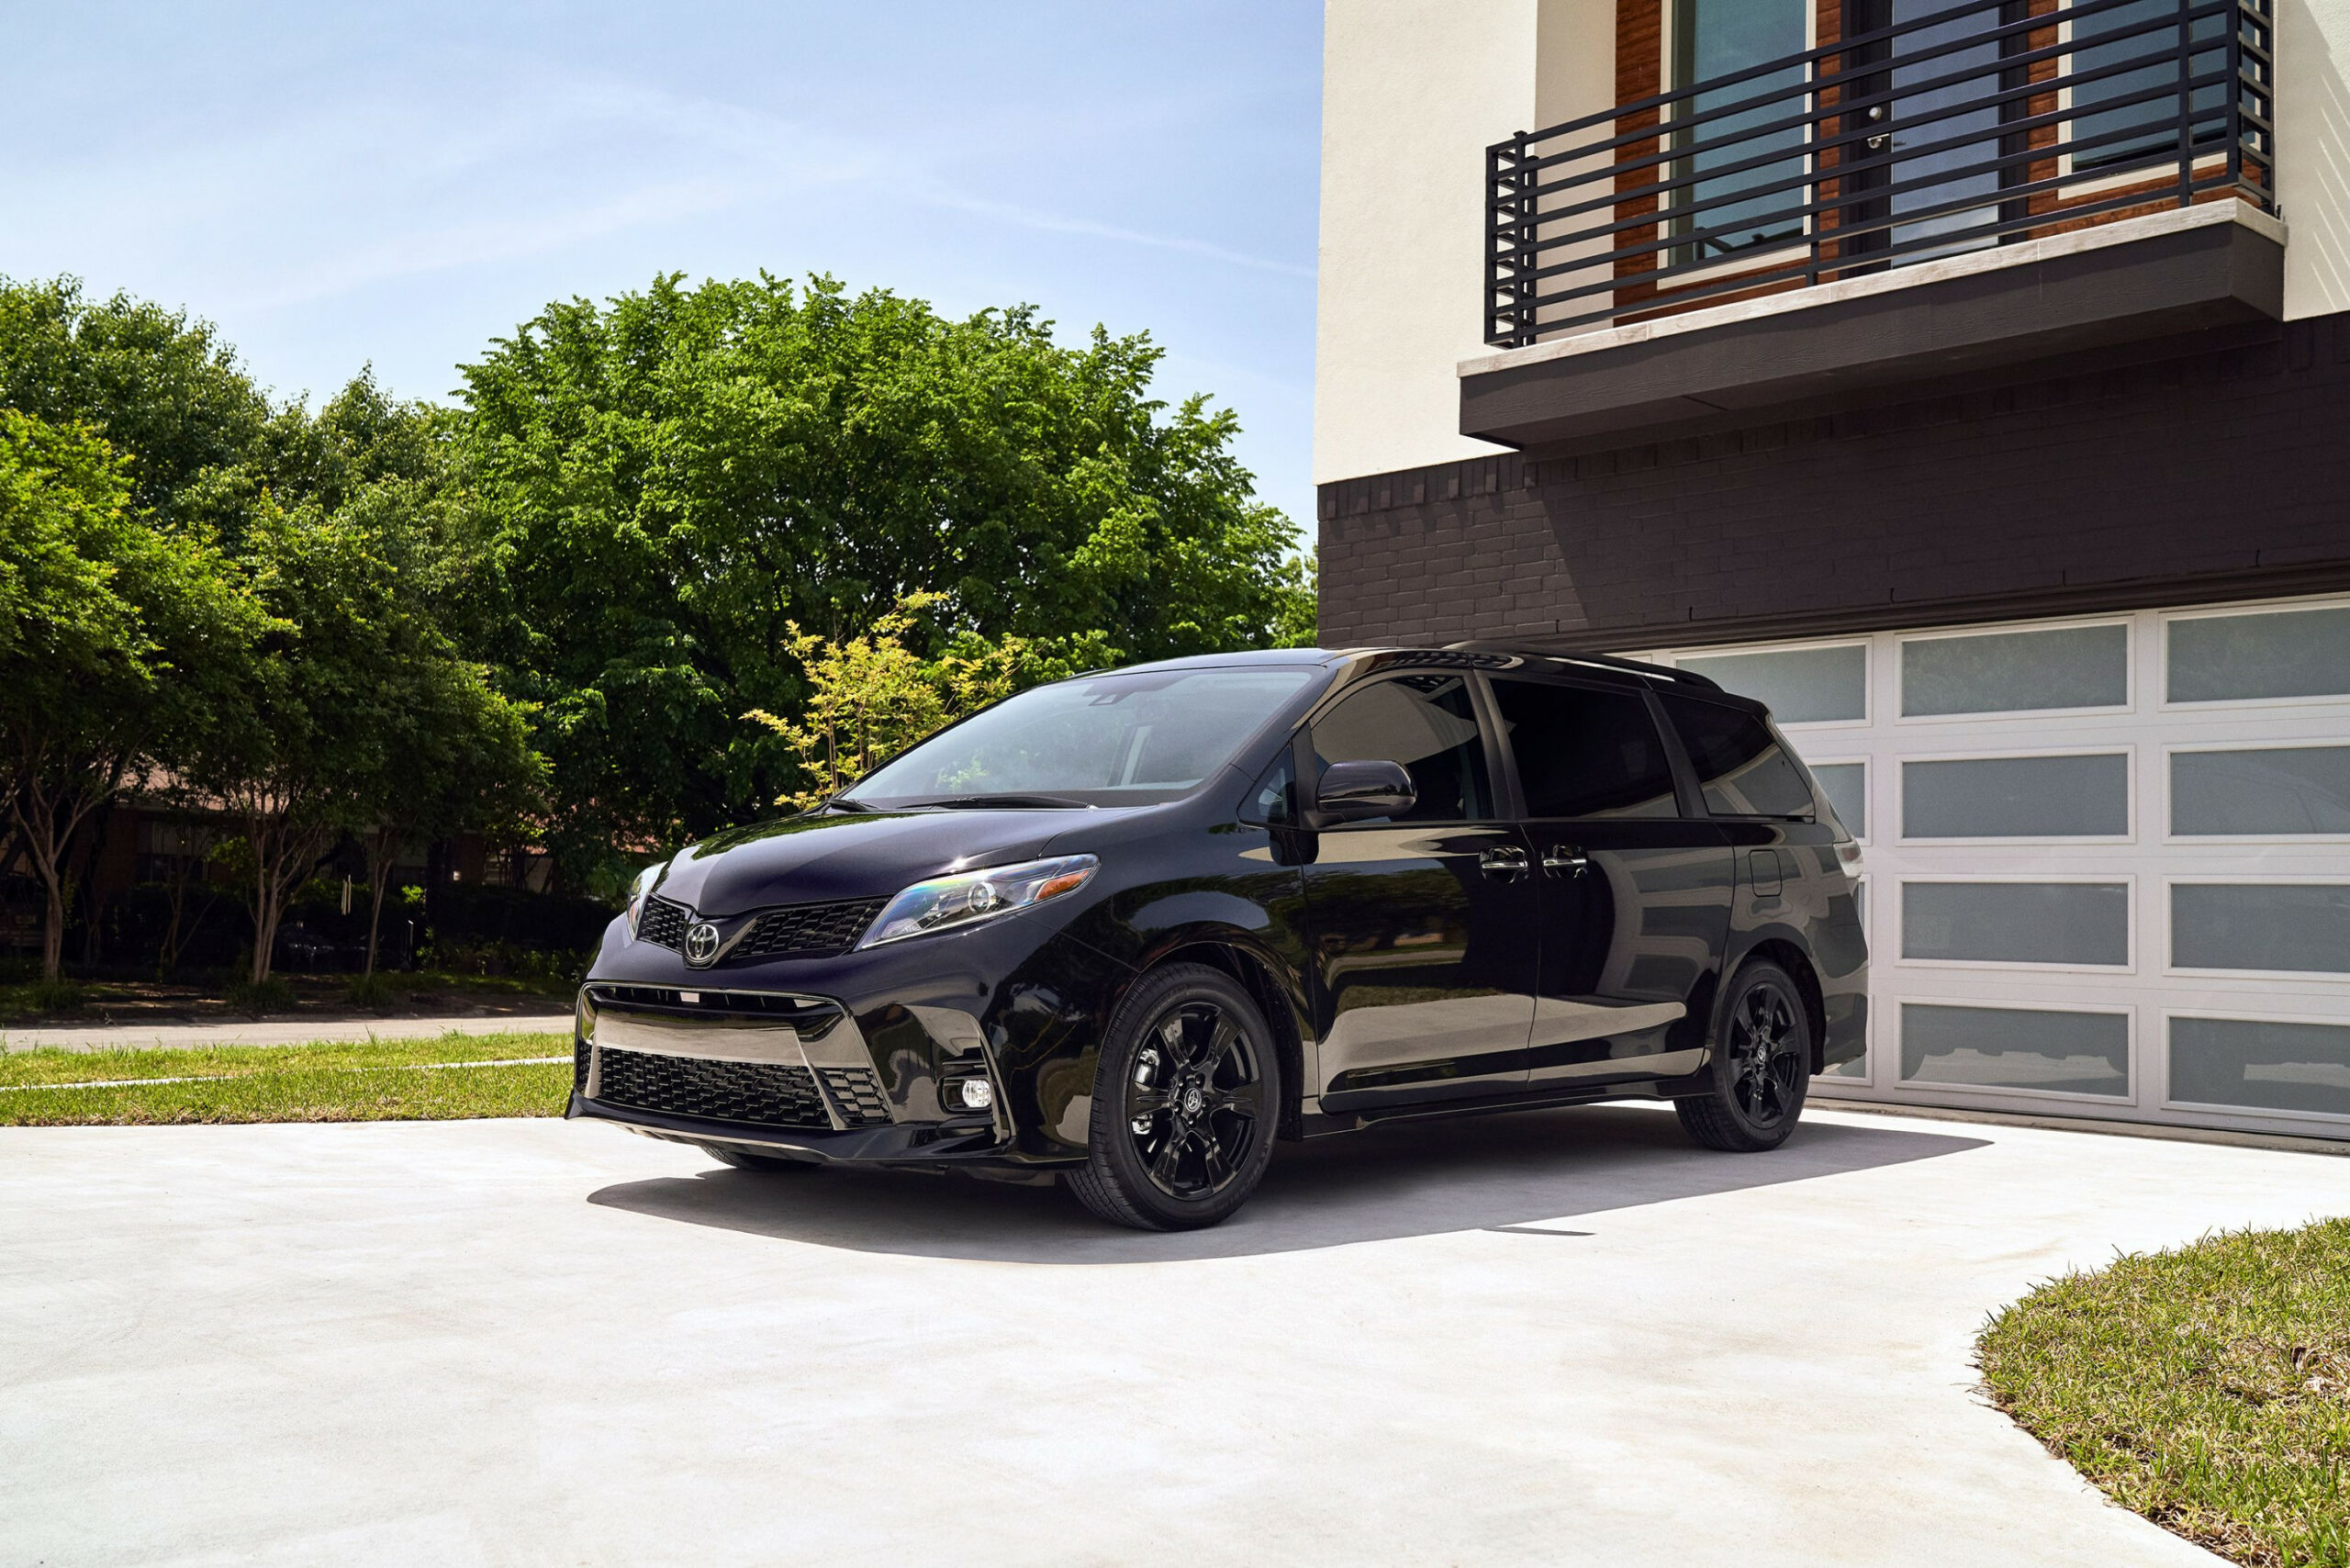 8 Toyota Sienna Review, Pricing, and Specs